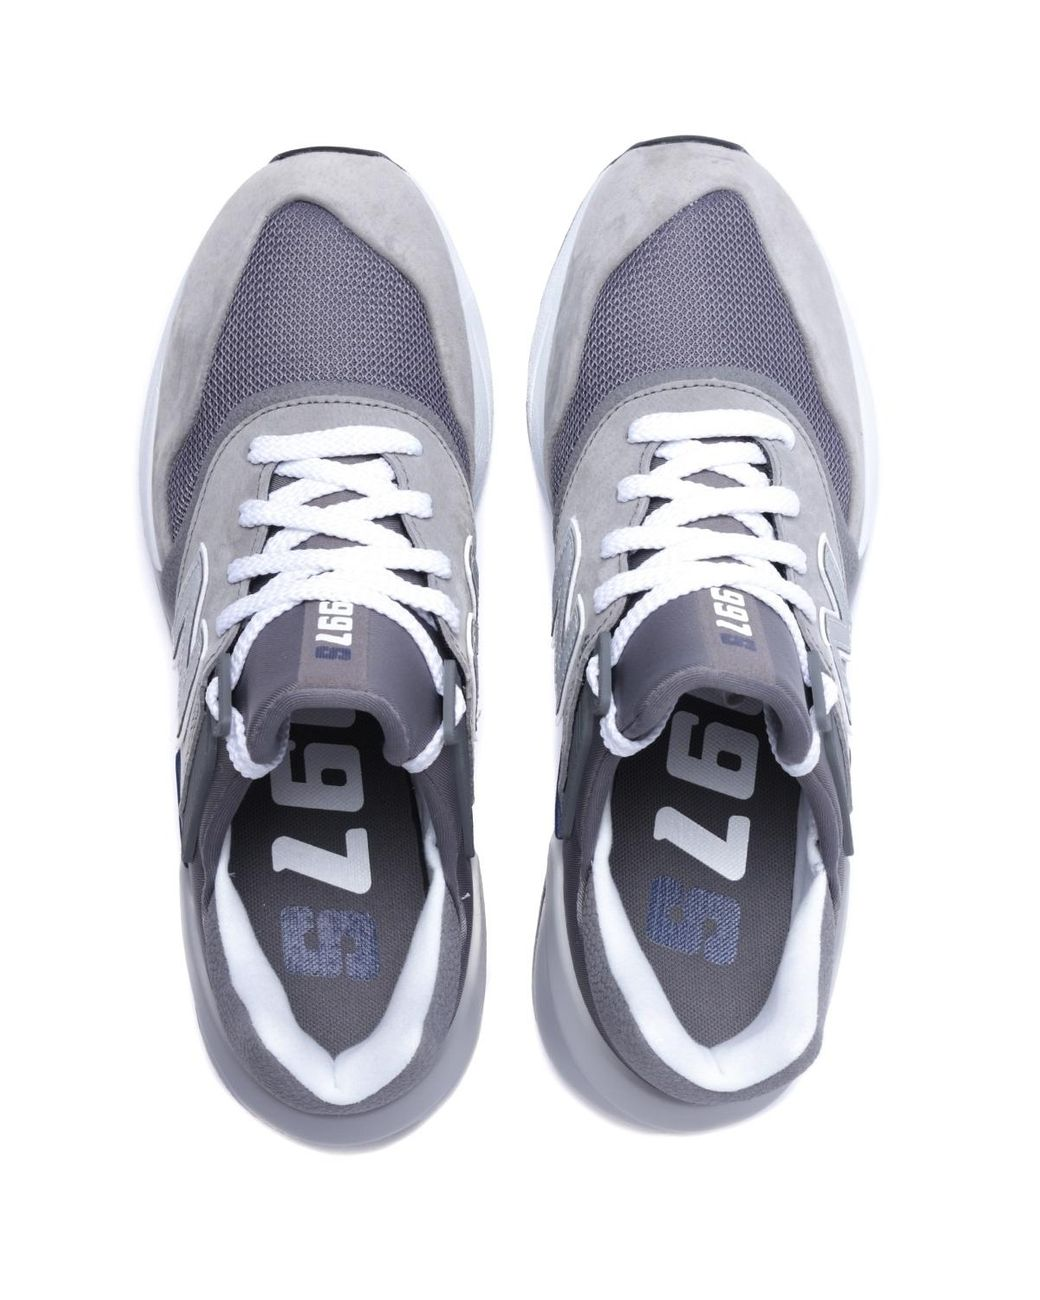 timeless design 100% authentic detailed images New Balance Suede Ms997 Motion Control Stone Grey Trainers ...